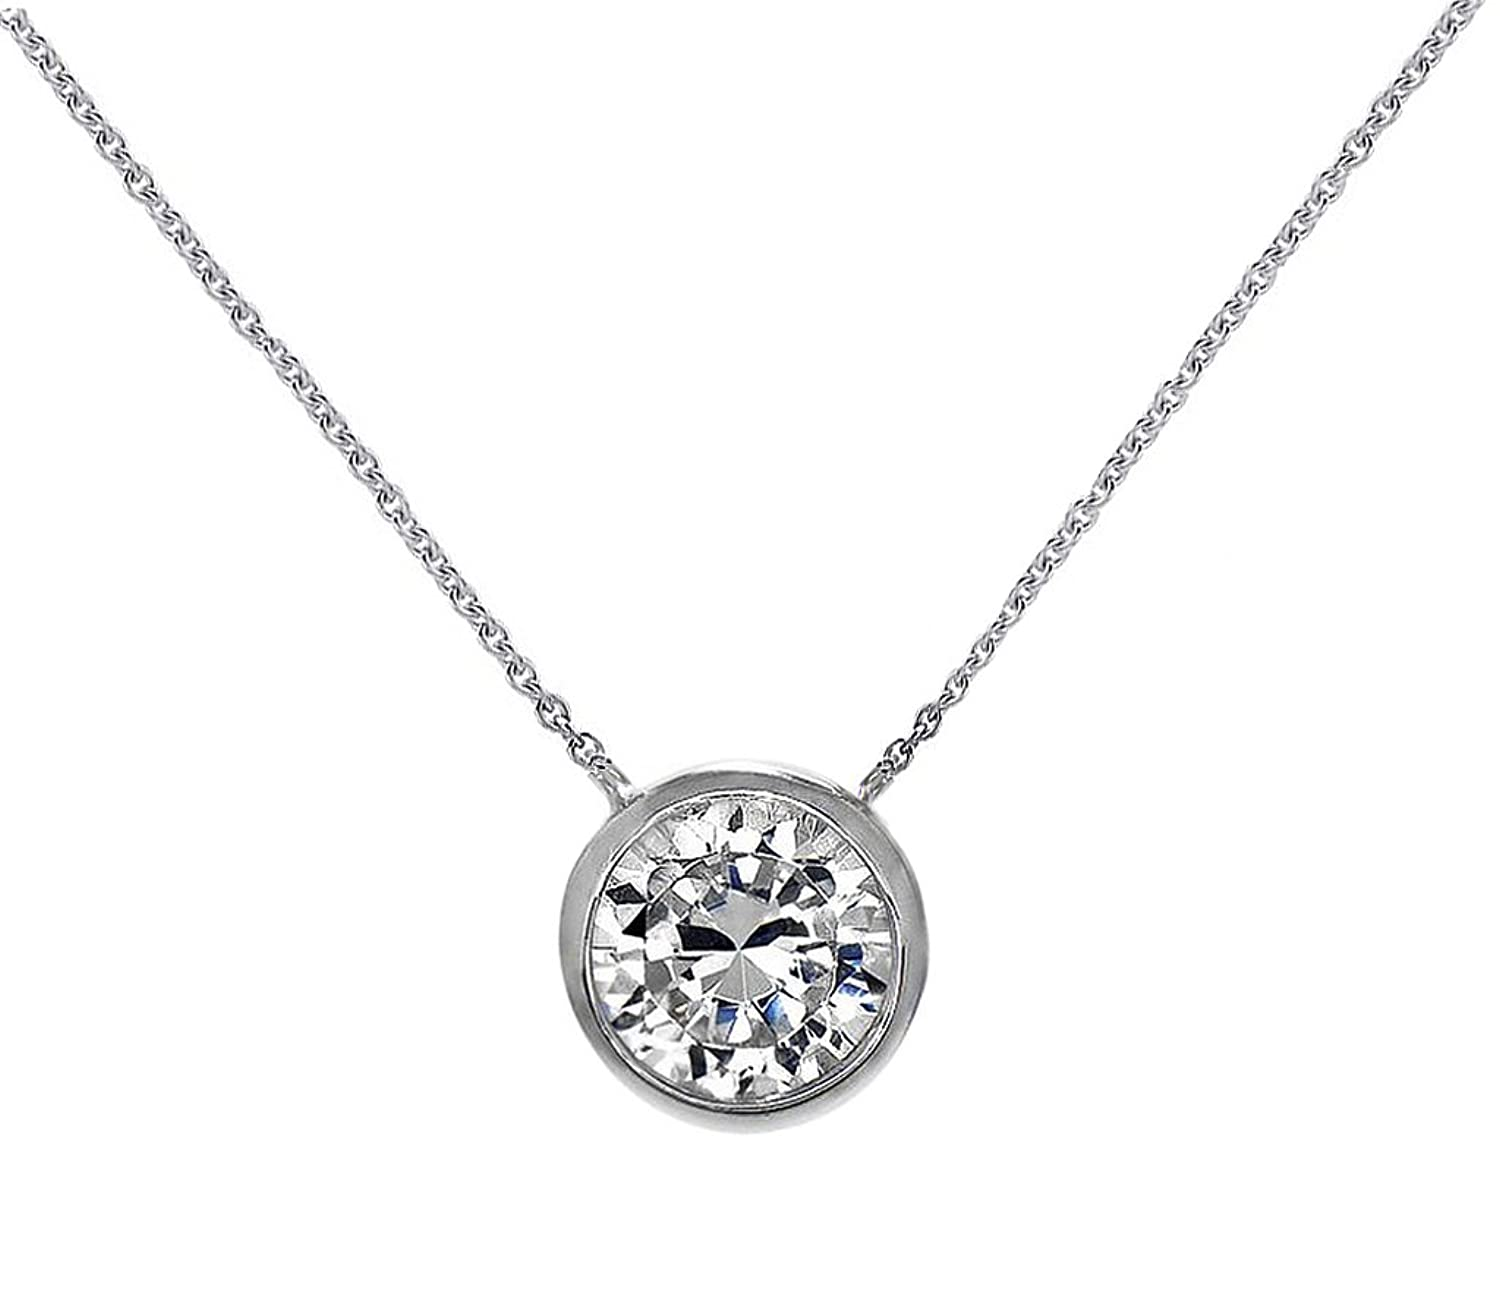 Amazon solitaire pendant necklace 925 sterling silver round amazon solitaire pendant necklace 925 sterling silver round 6mm cz bezel set 16 18 free box tiffany co jewelry aloadofball Images